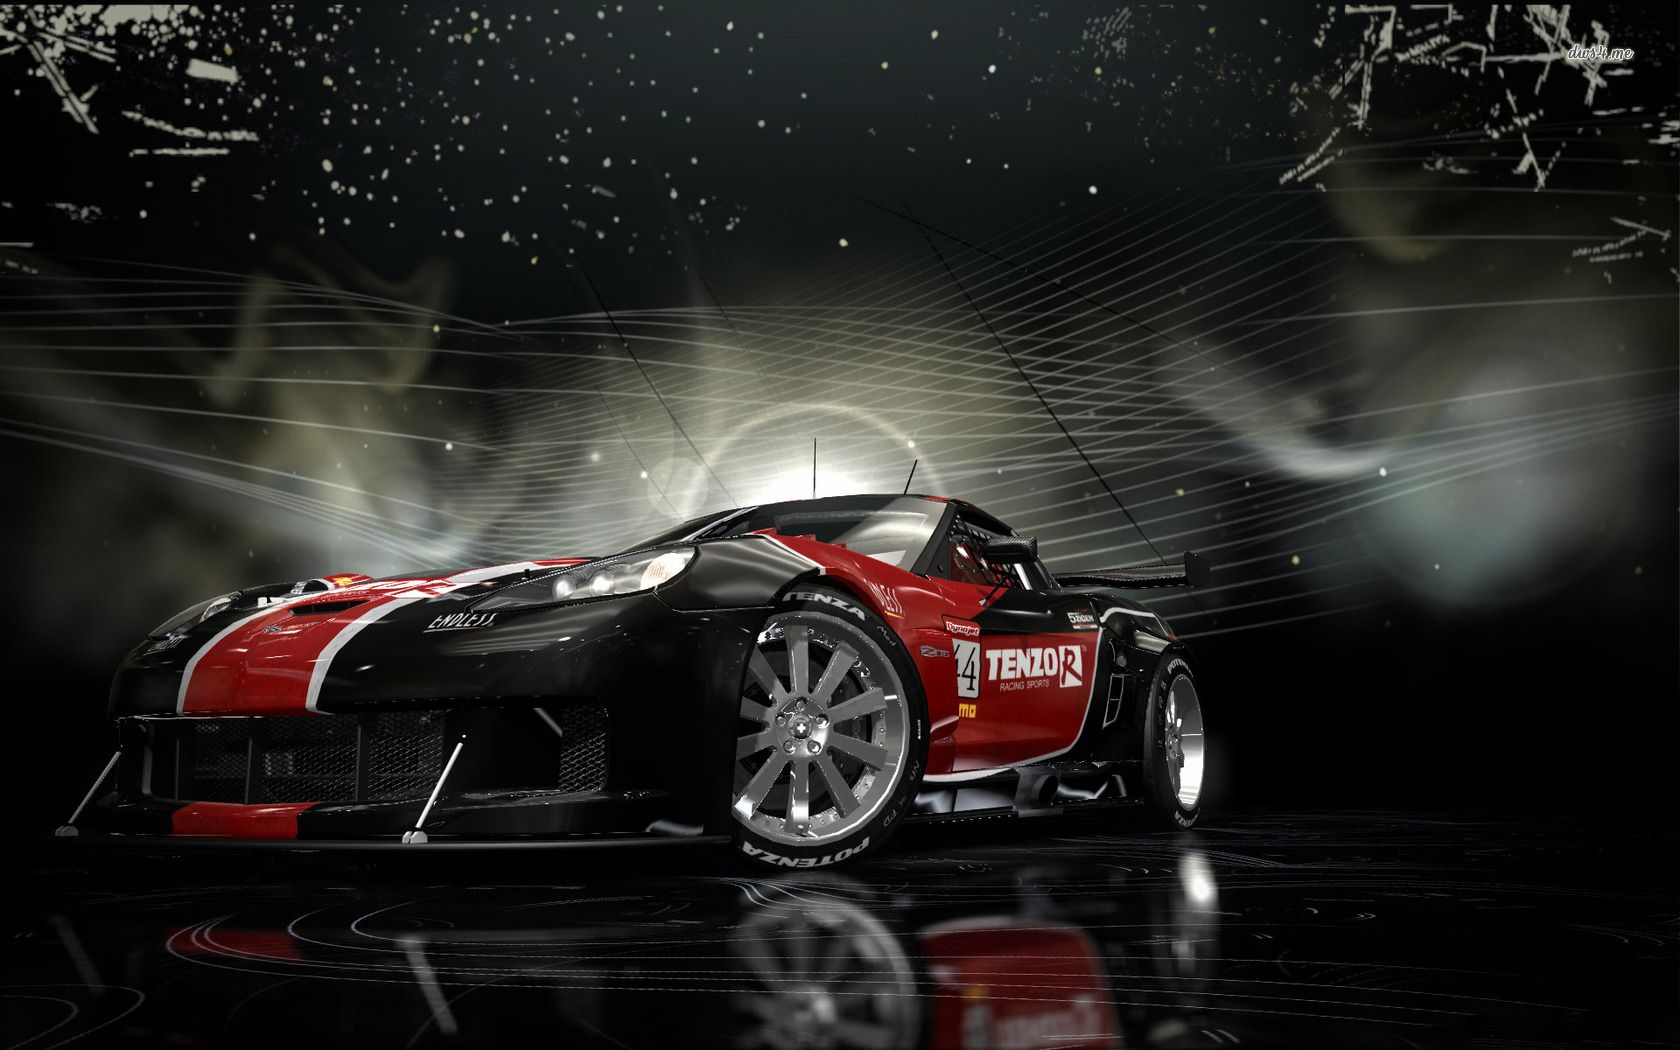 Sports Car Wallpaper For Bedroom: Need For Speed-Shift HD Wallpaper